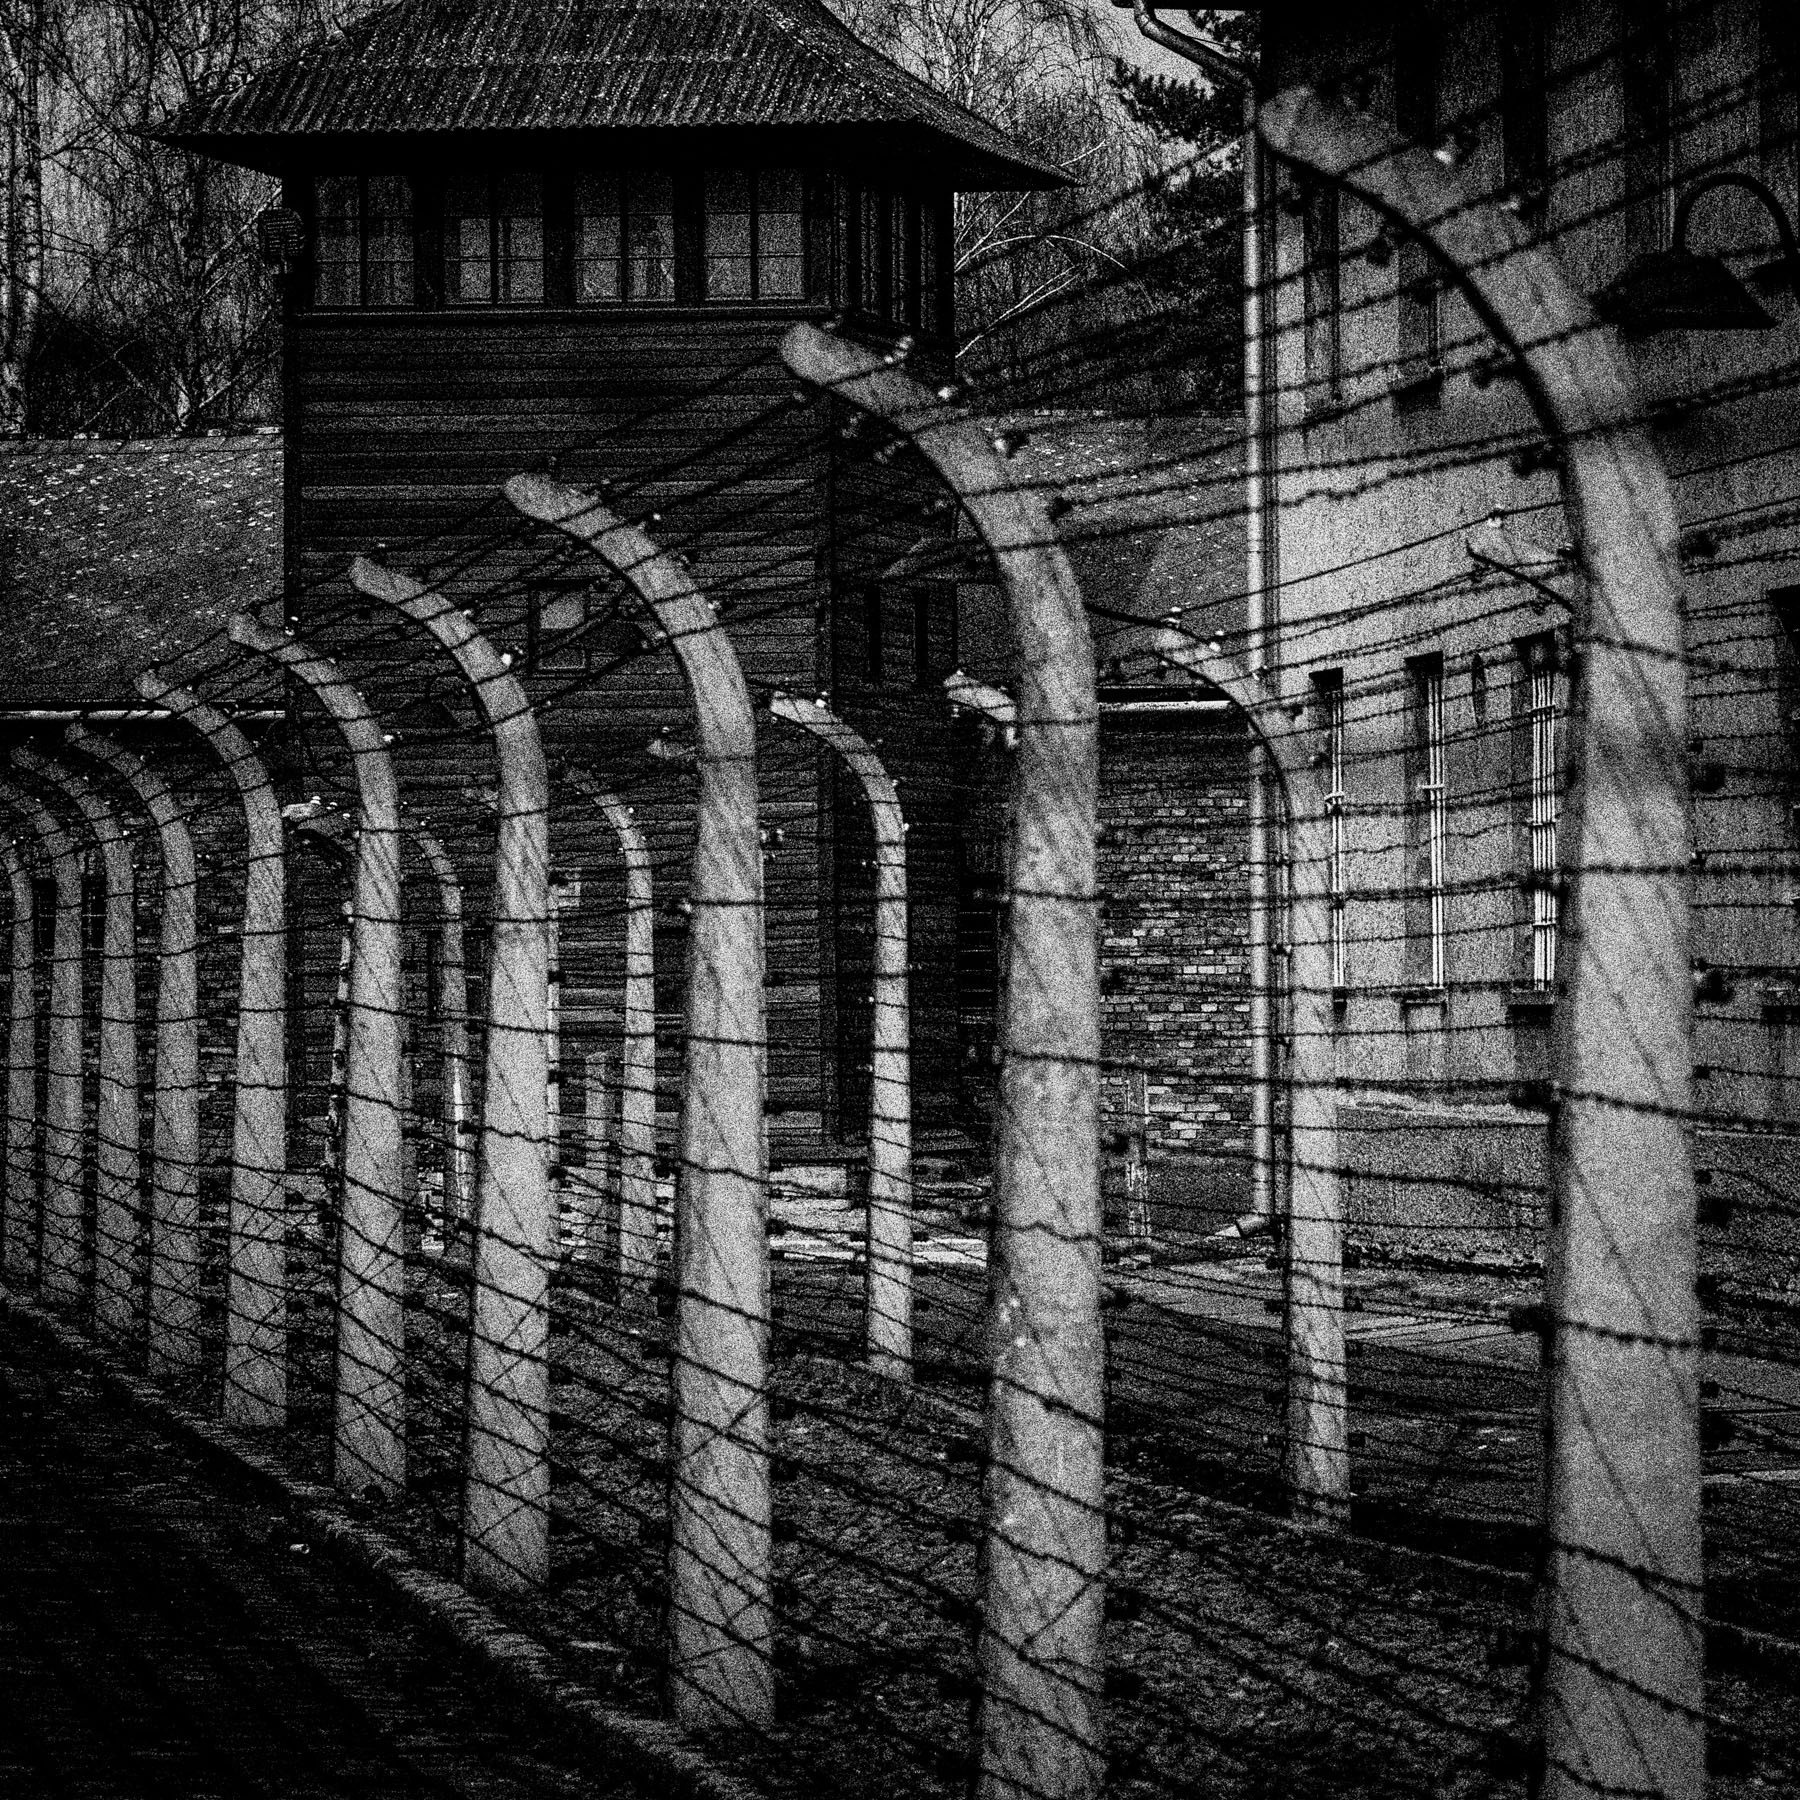 Auschwitz Concentration Camp Birkenau